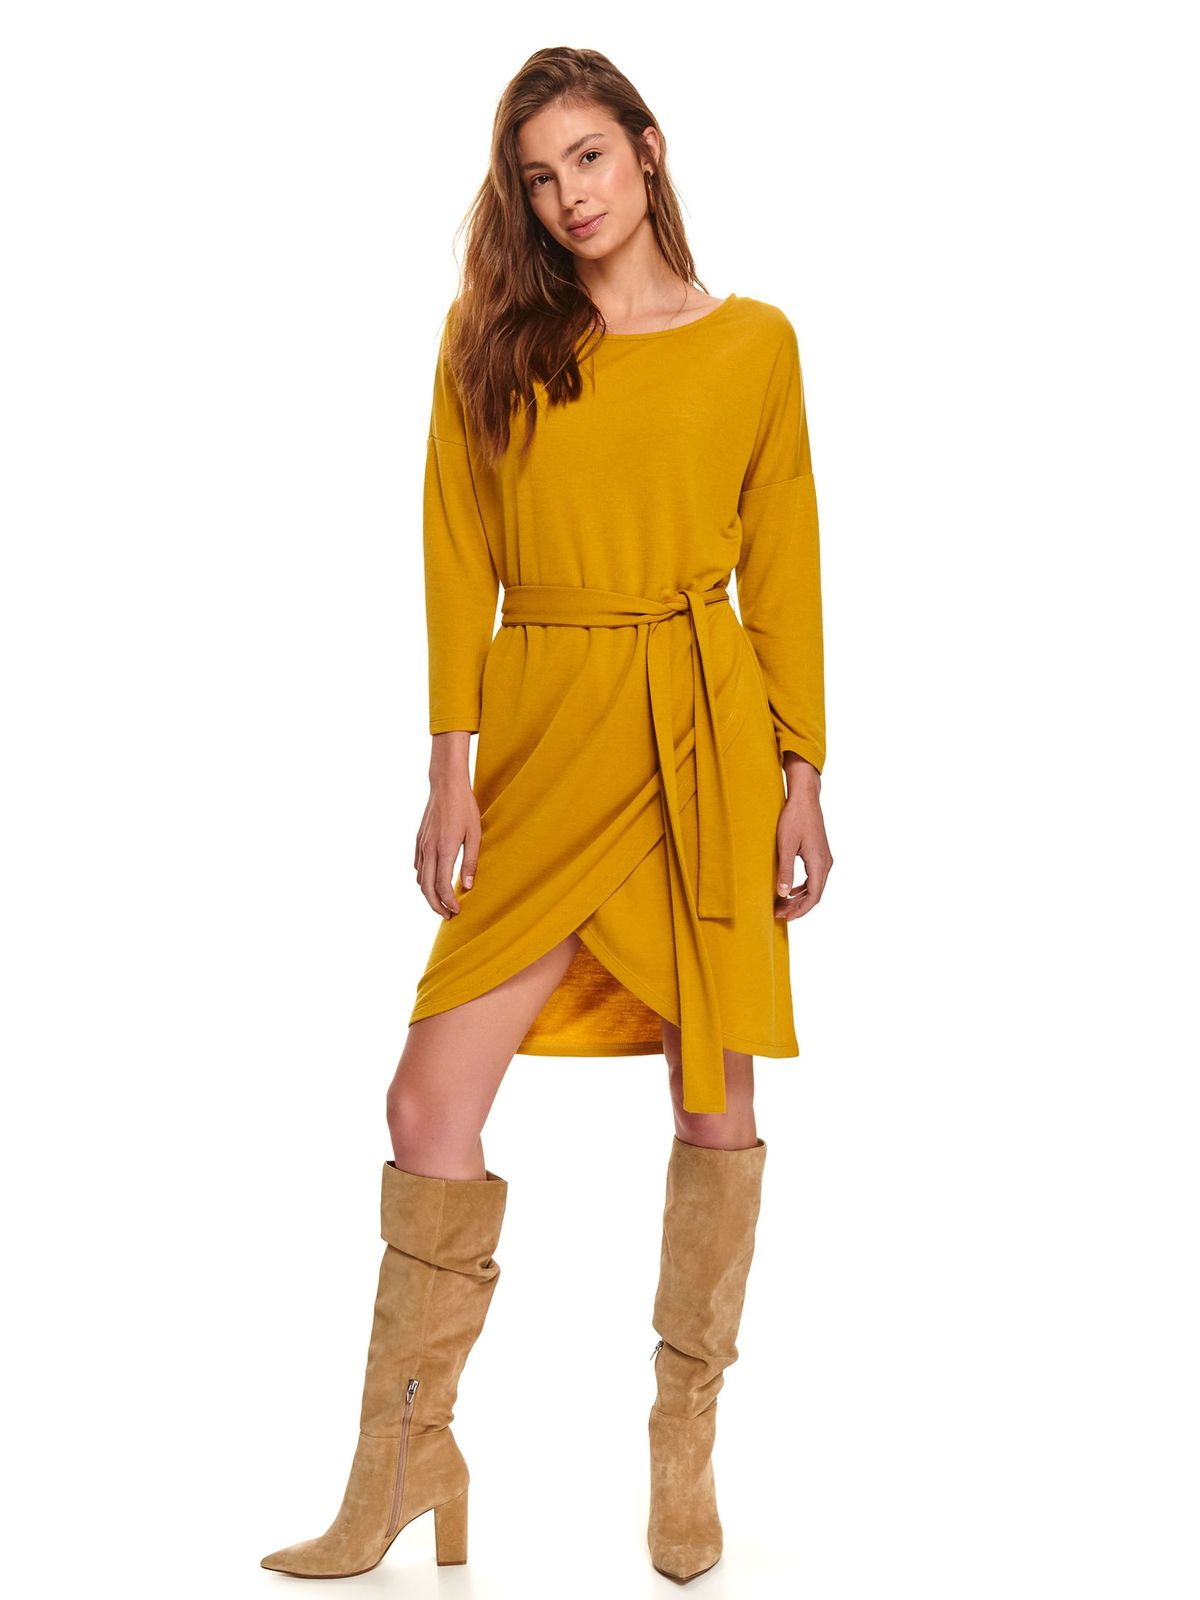 Yellow dress daily short cut airy fabric accessorized with tied waistband